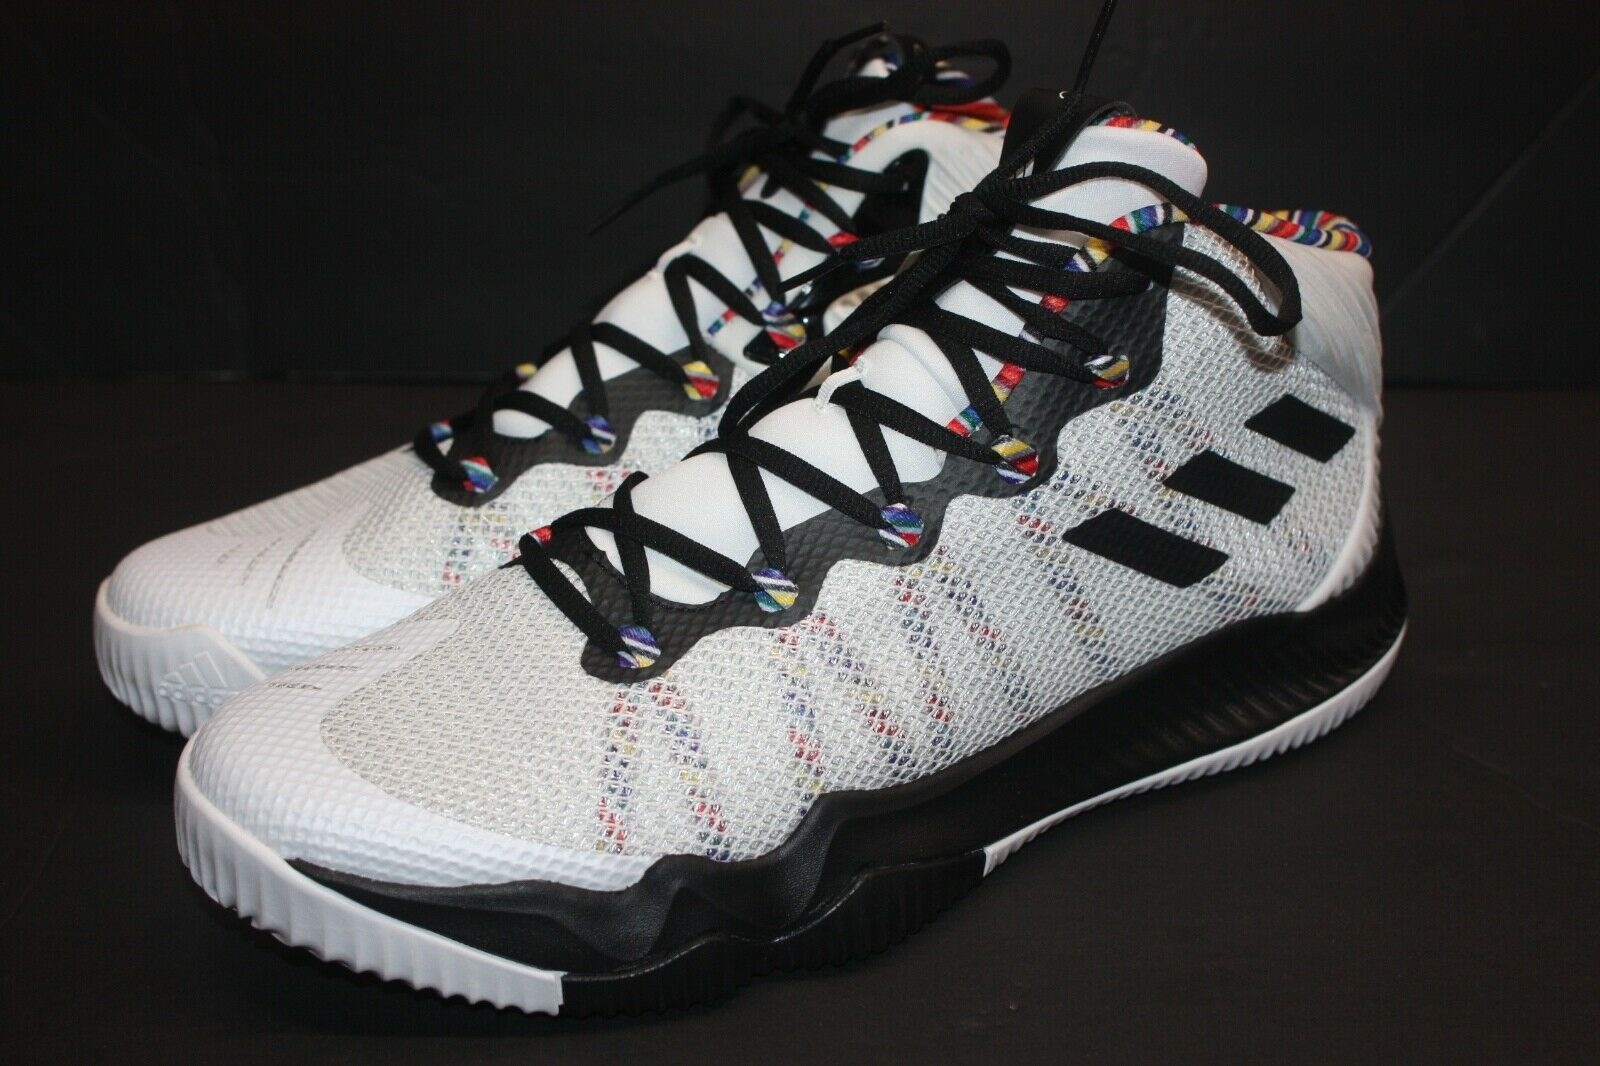 Adidas Crazy Hustle Arthur Ashe BHM shoes Mens Size 13.5 BY4518